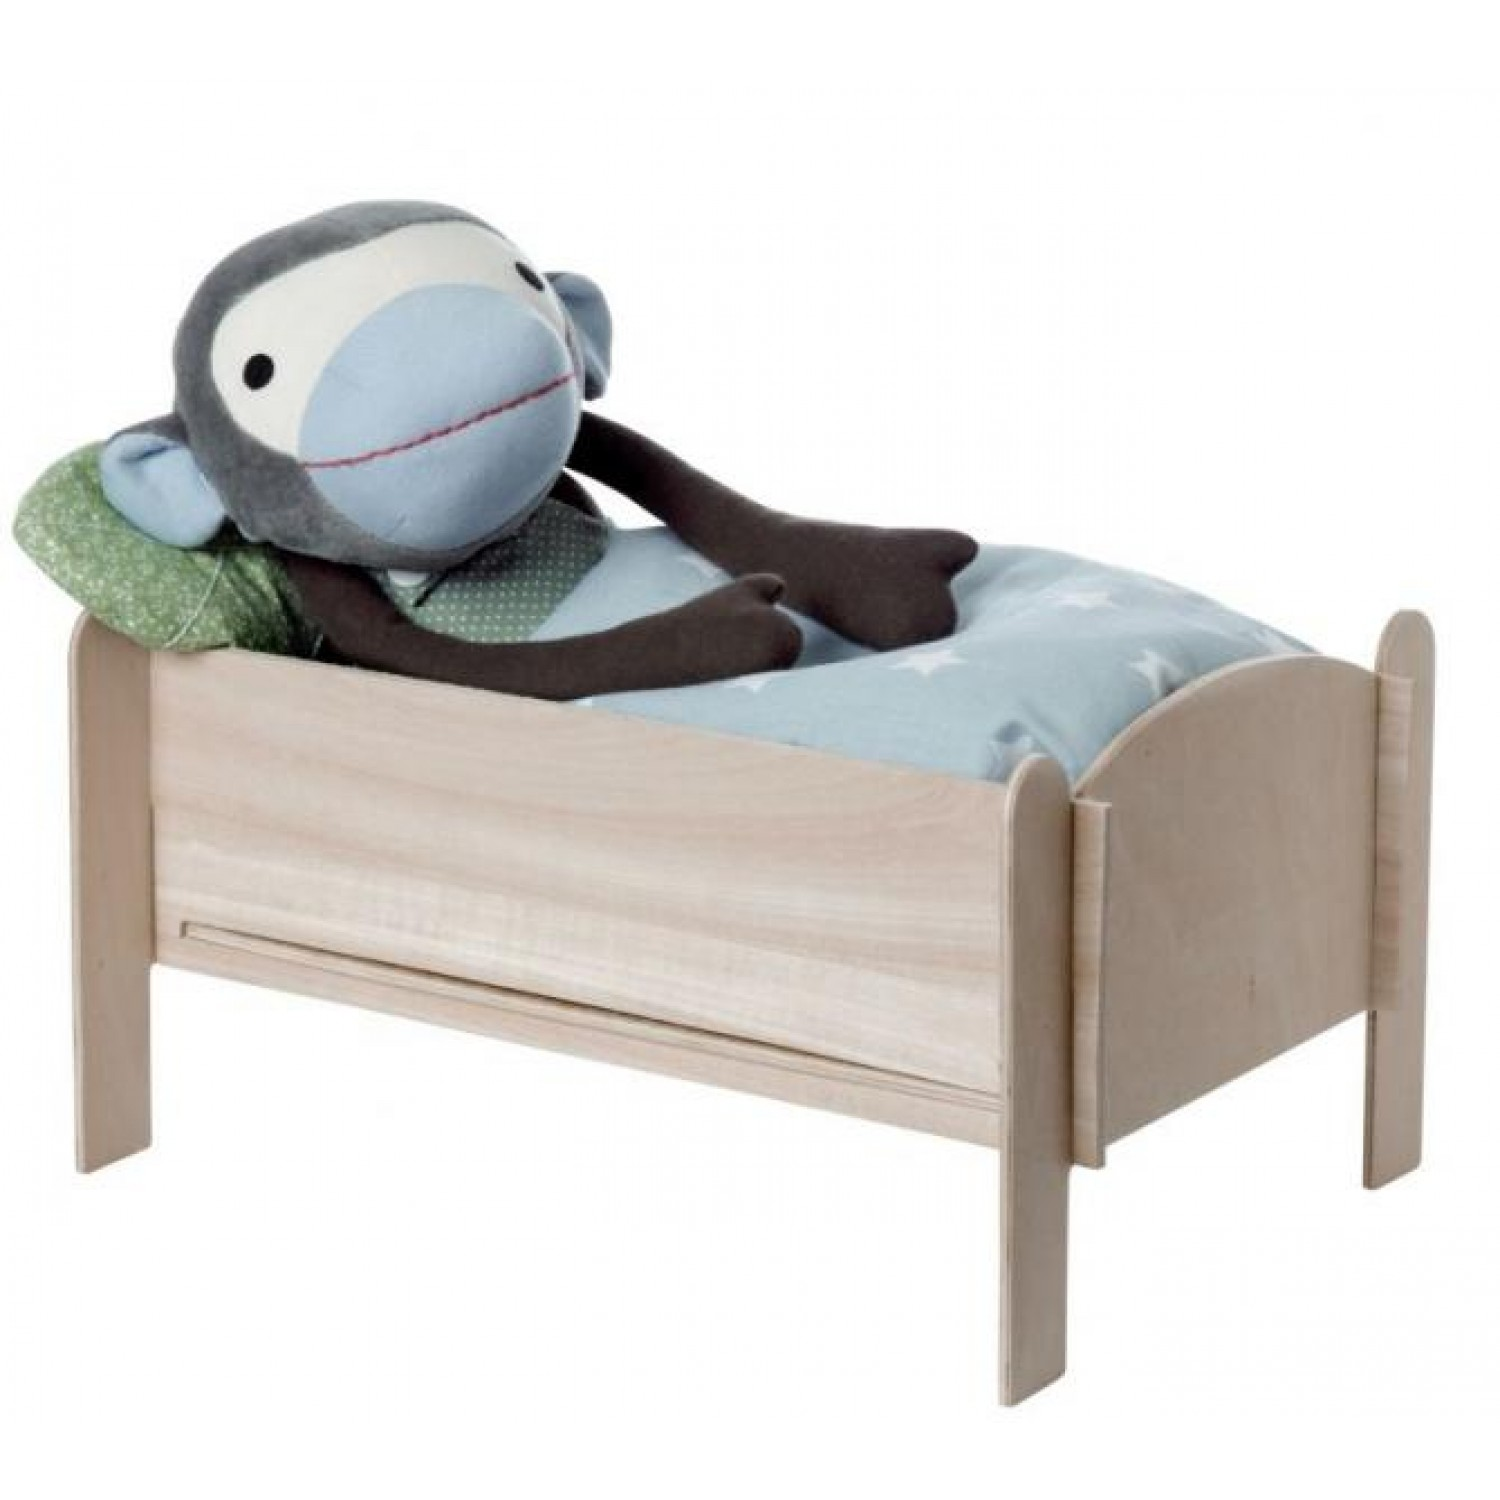 Wooden Doll Bed for Monkey & Soft Toy | Franck & Fischer